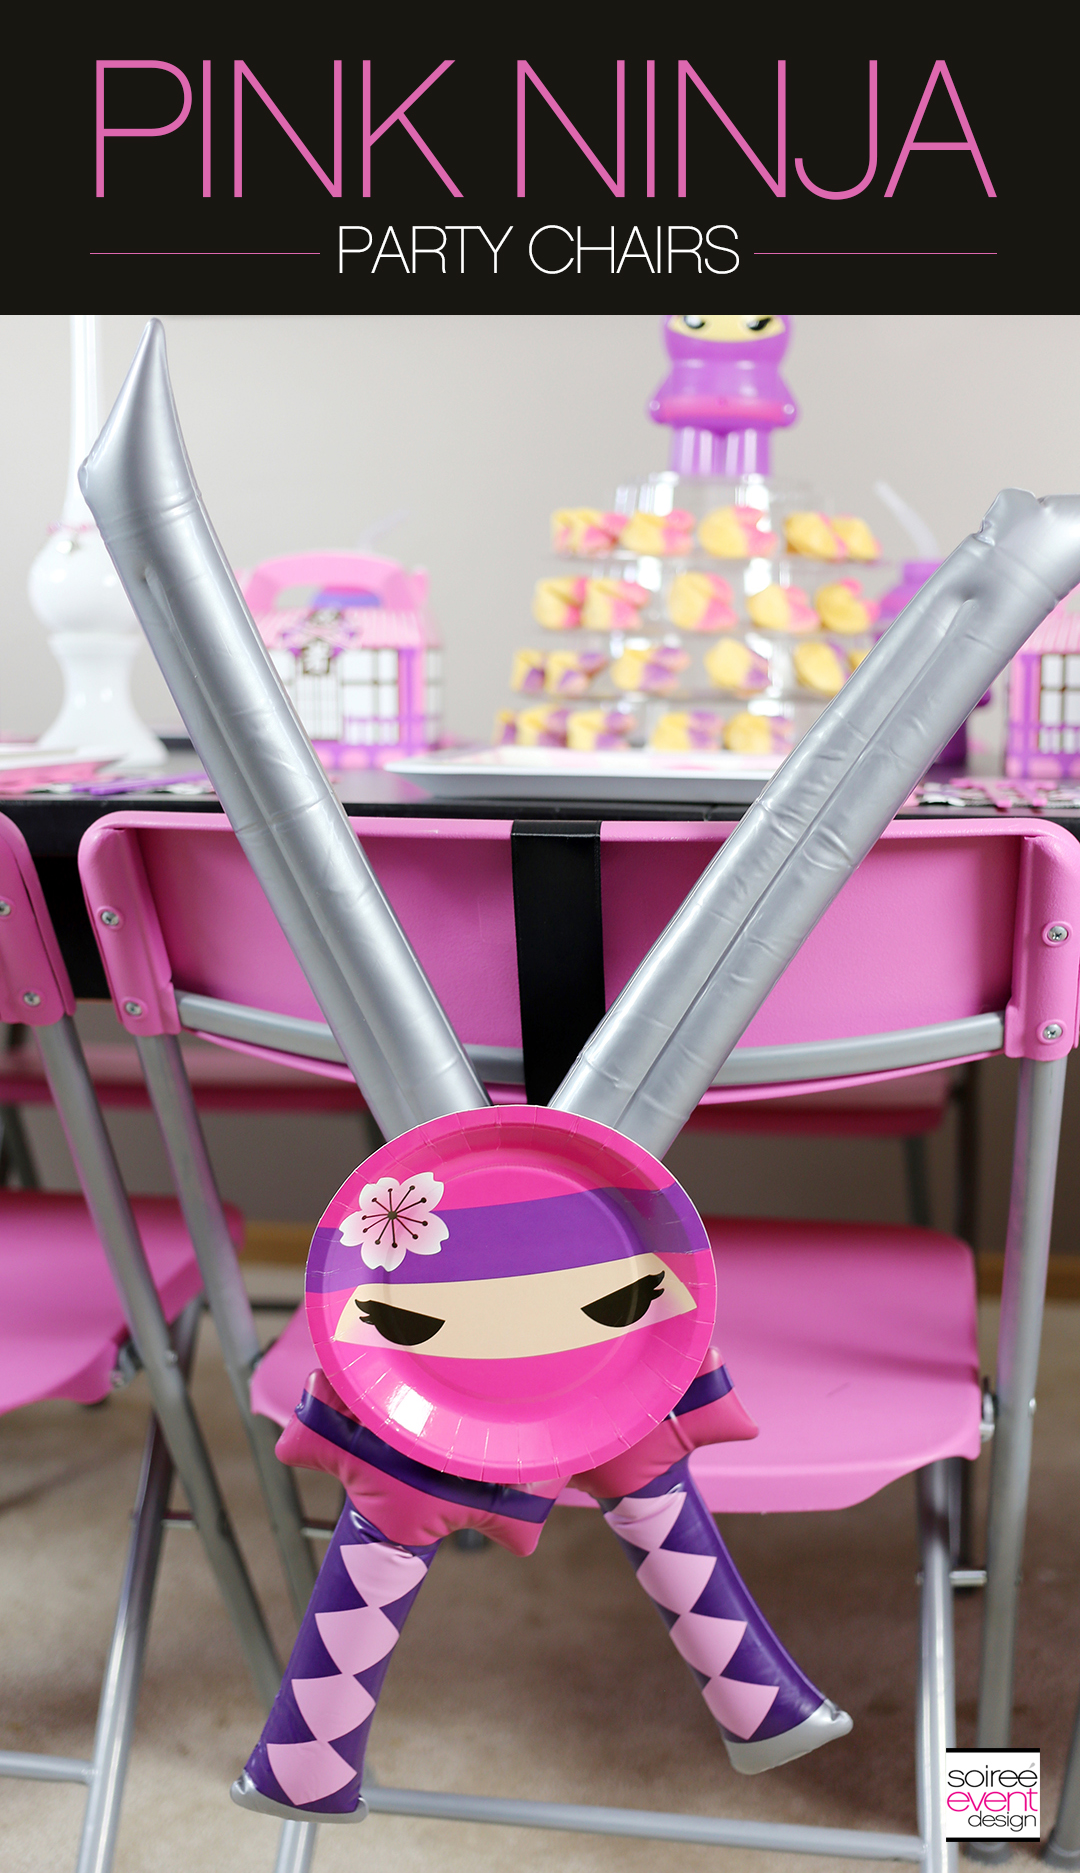 Pink Ninja Party Chairs